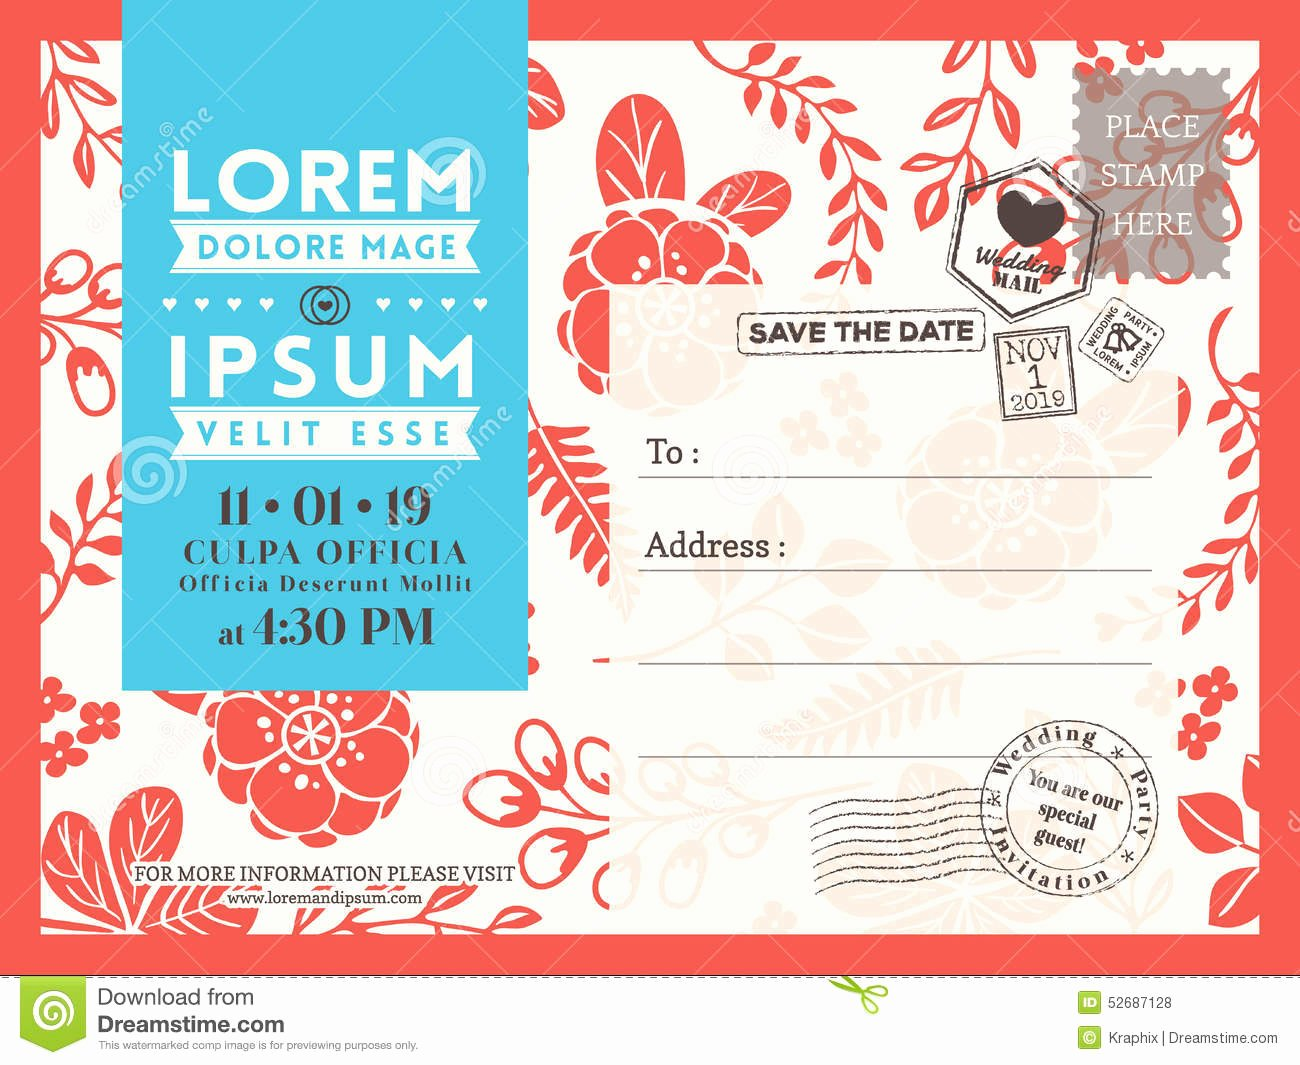 Credit Card Invitation Template Elegant Floral Postcard Background Template for Wedding Invitation